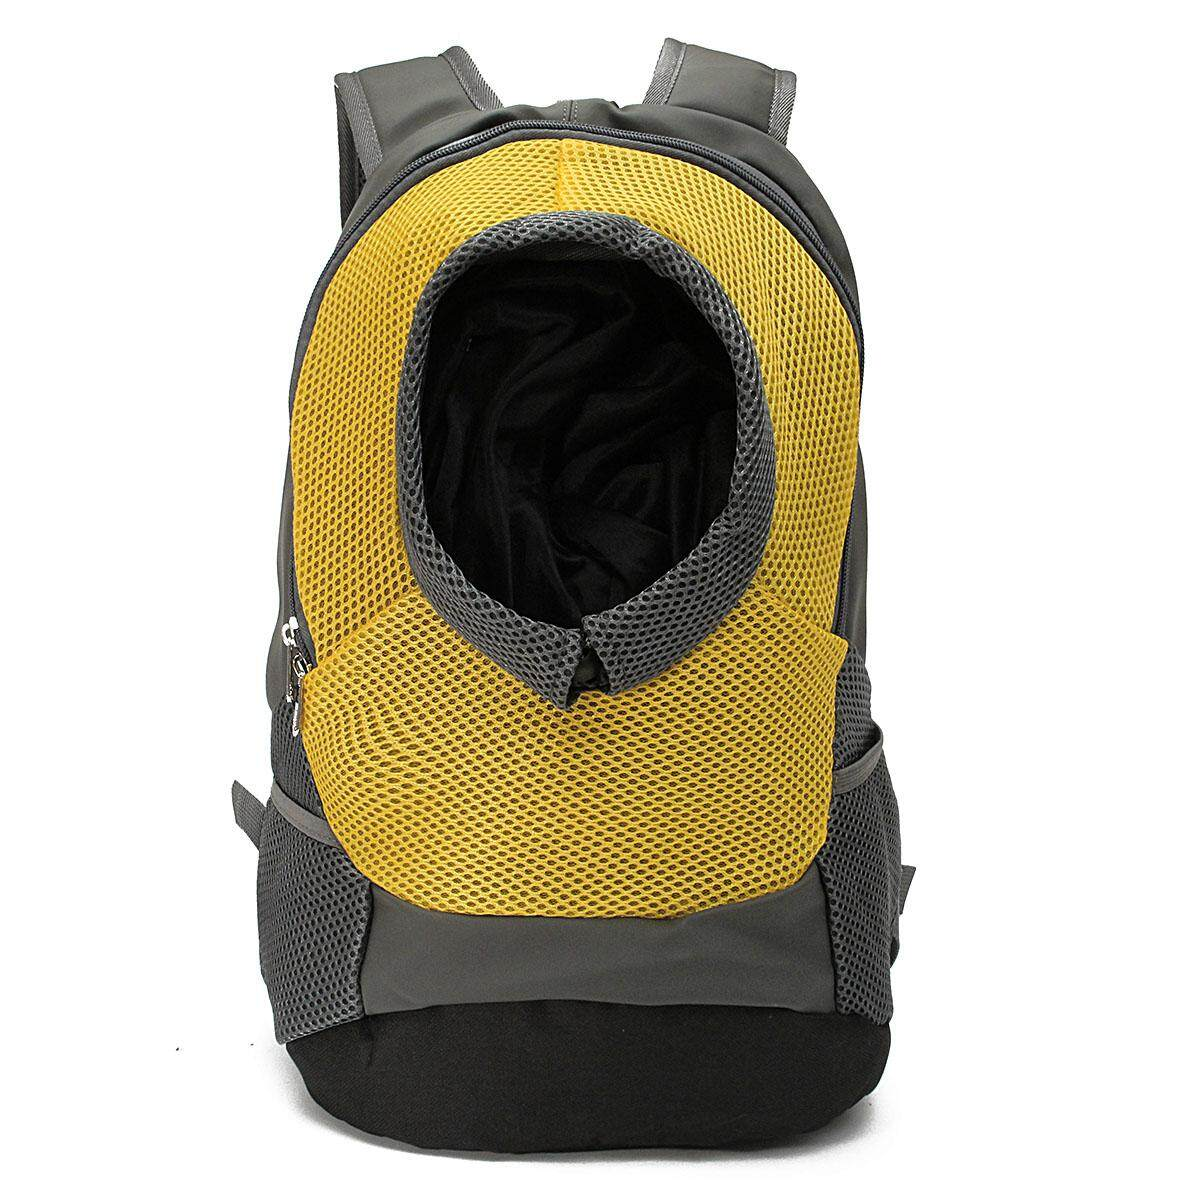 Pet Cat Puppy Carrier Front Tote Backpack Mesh Heads Out Travel Shoulder Bag Yellow M - Intl By Freebang.